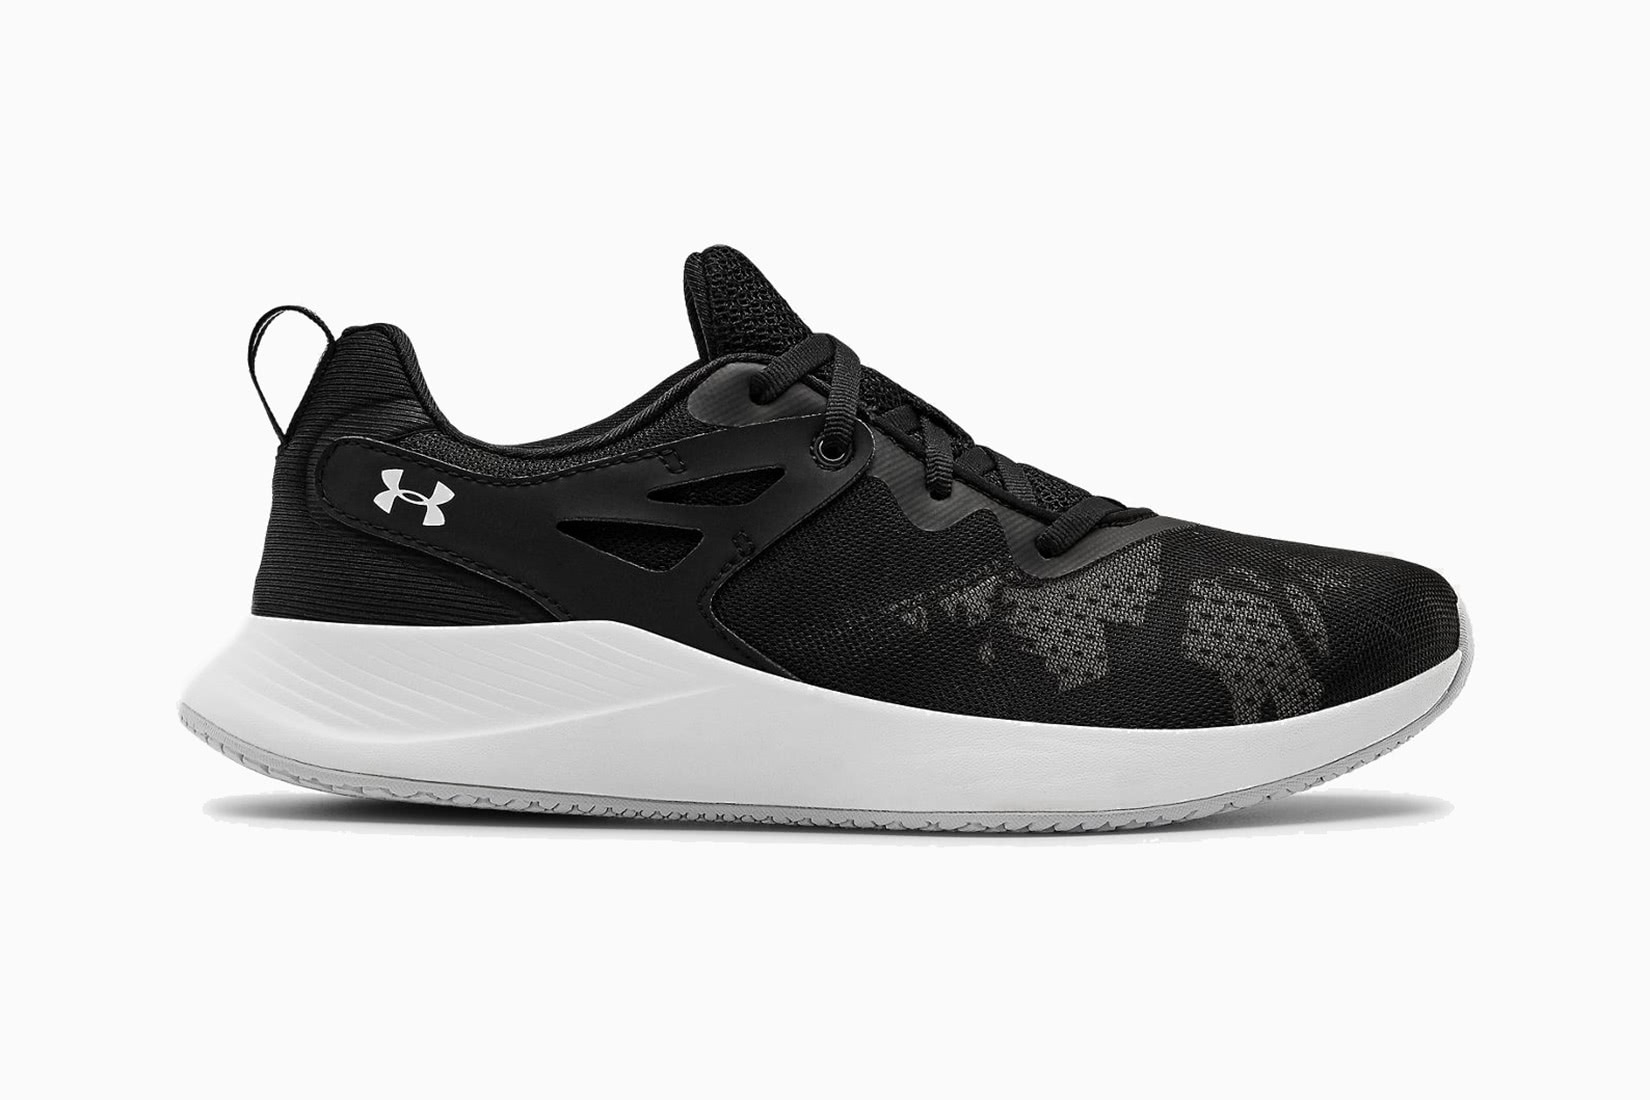 best women walking shoes under armour charged breathe TR 2+ sneakers - Luxe Digital